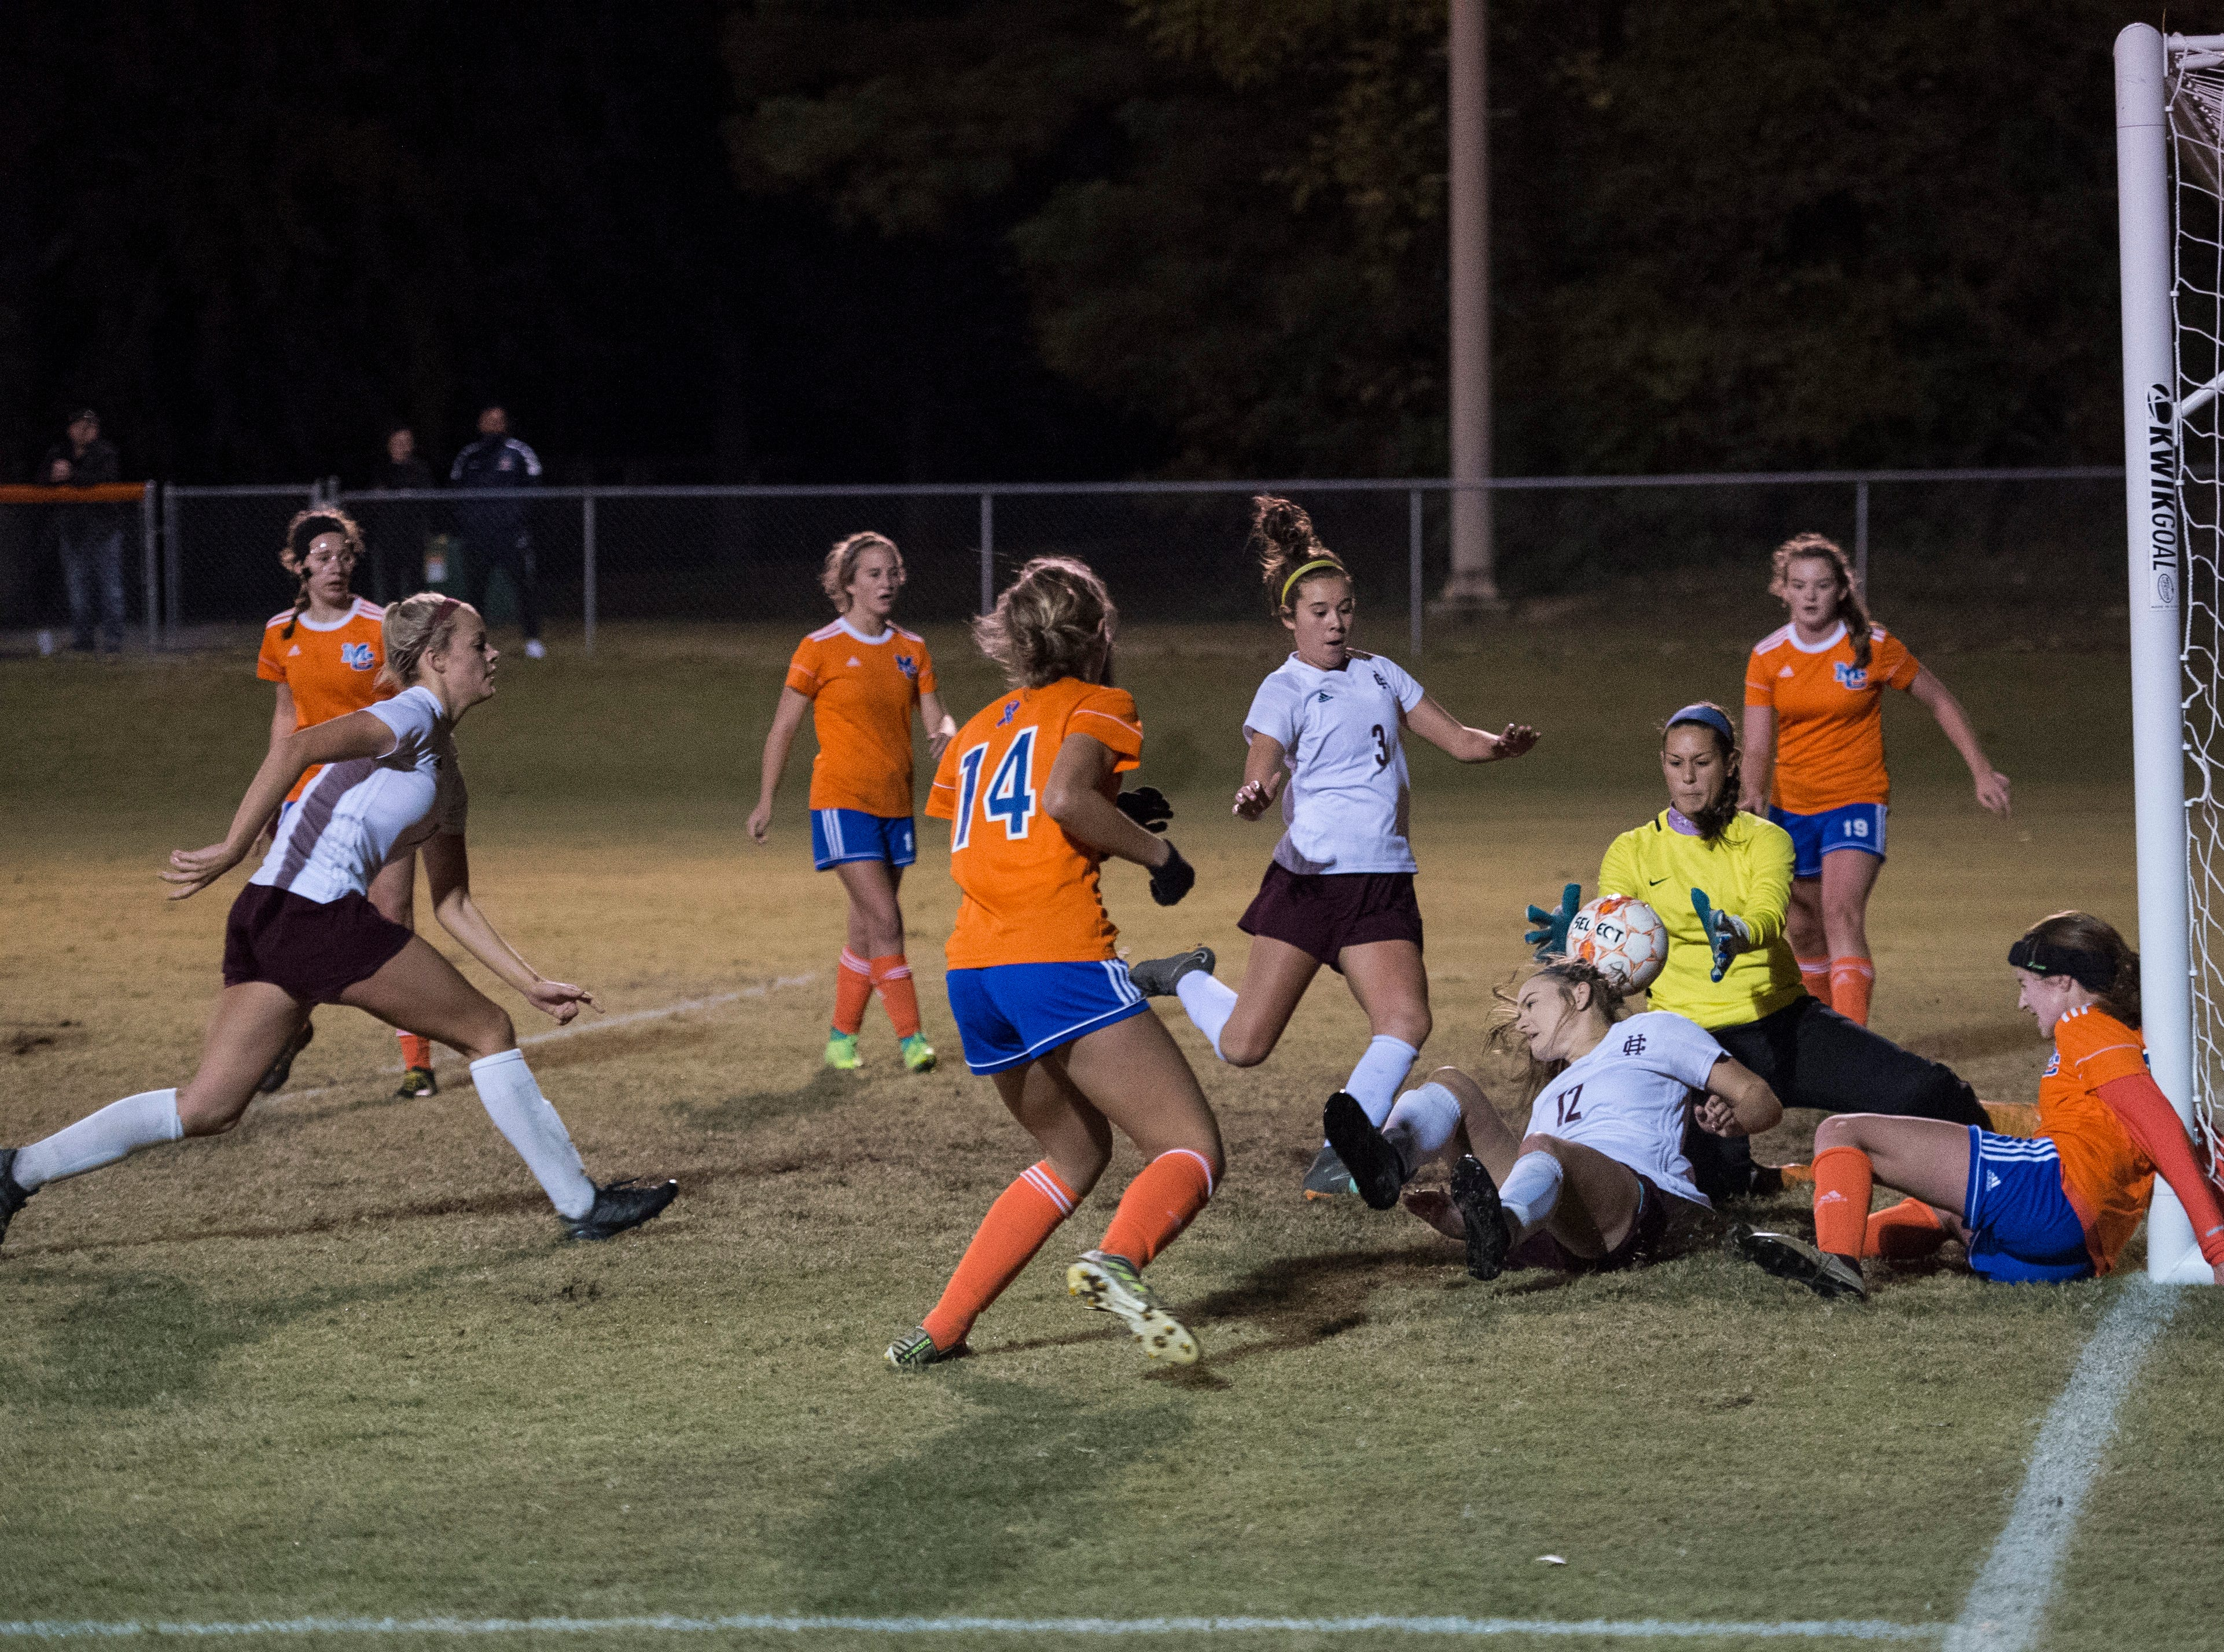 Chaos around the goal as Henderson's Whitnie West (12) attempted to hip the ball towards the goal but was directed into the hands of Marshall County's Carlen Whirley (99)  during the first round of the KHSAA state tournament at Marshall County High School Monday, Oct. 23, 2018.